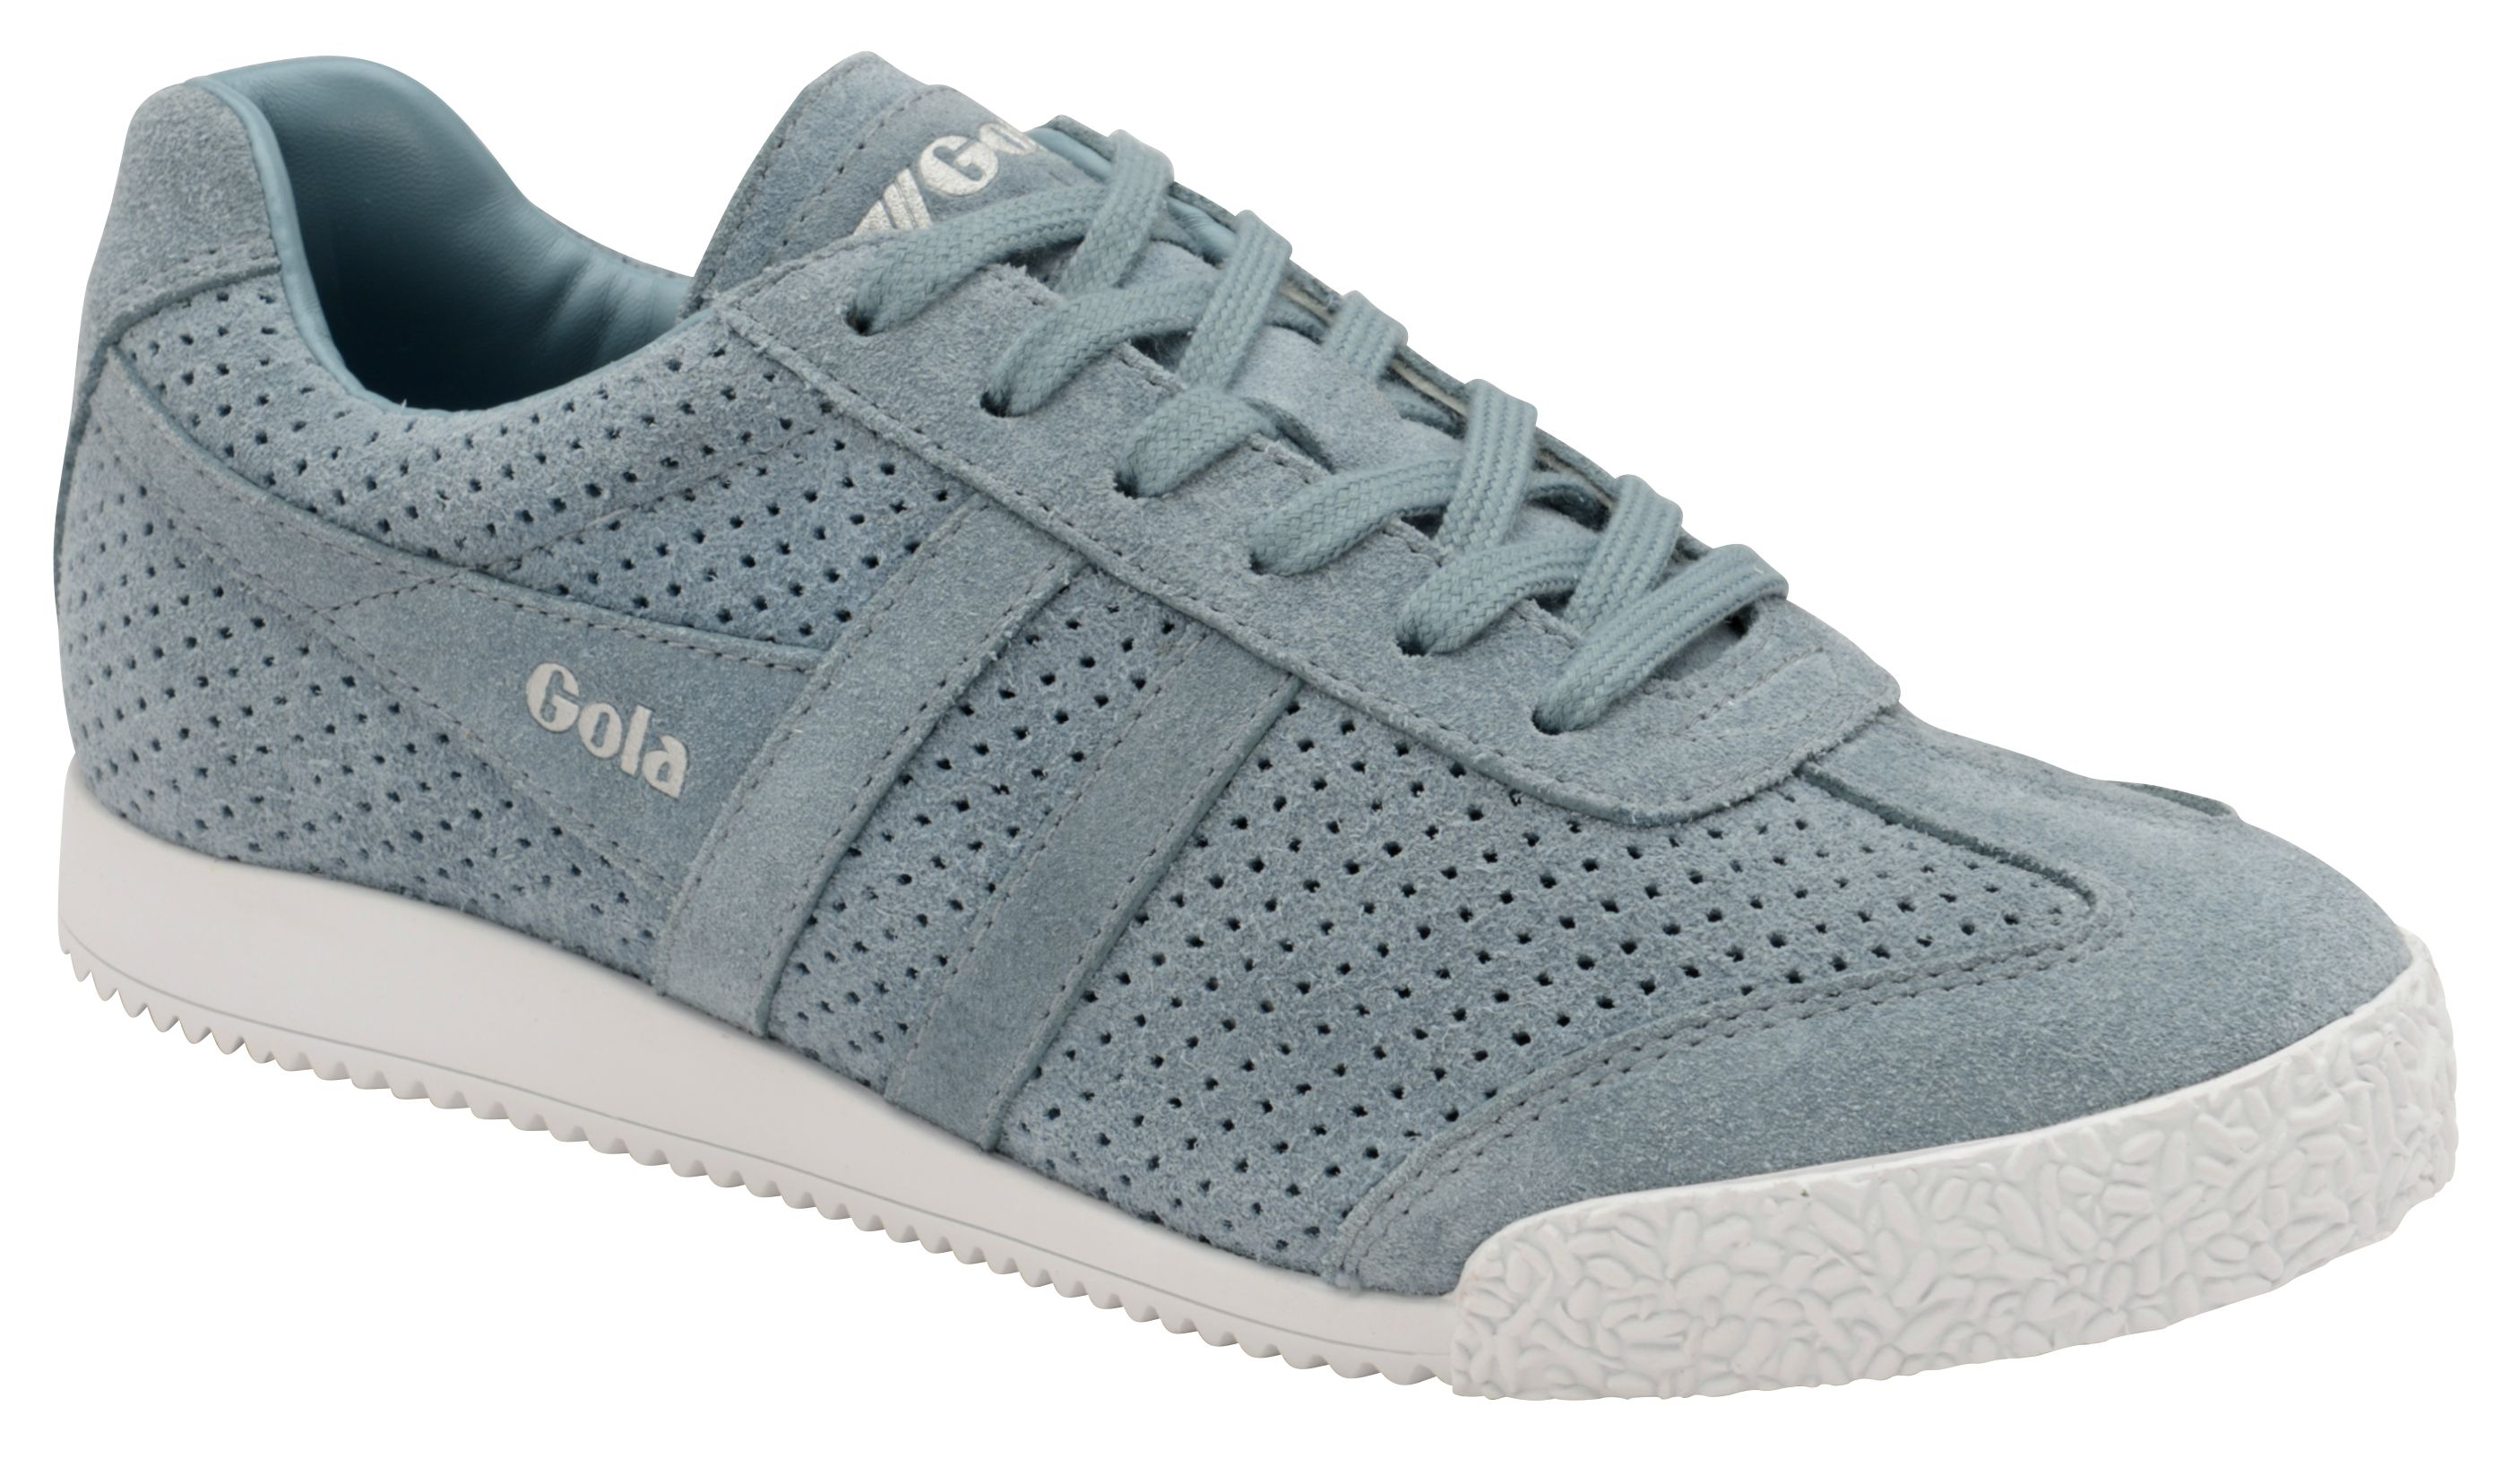 Gola Harrier Squared Lace Up Trainers, Teal